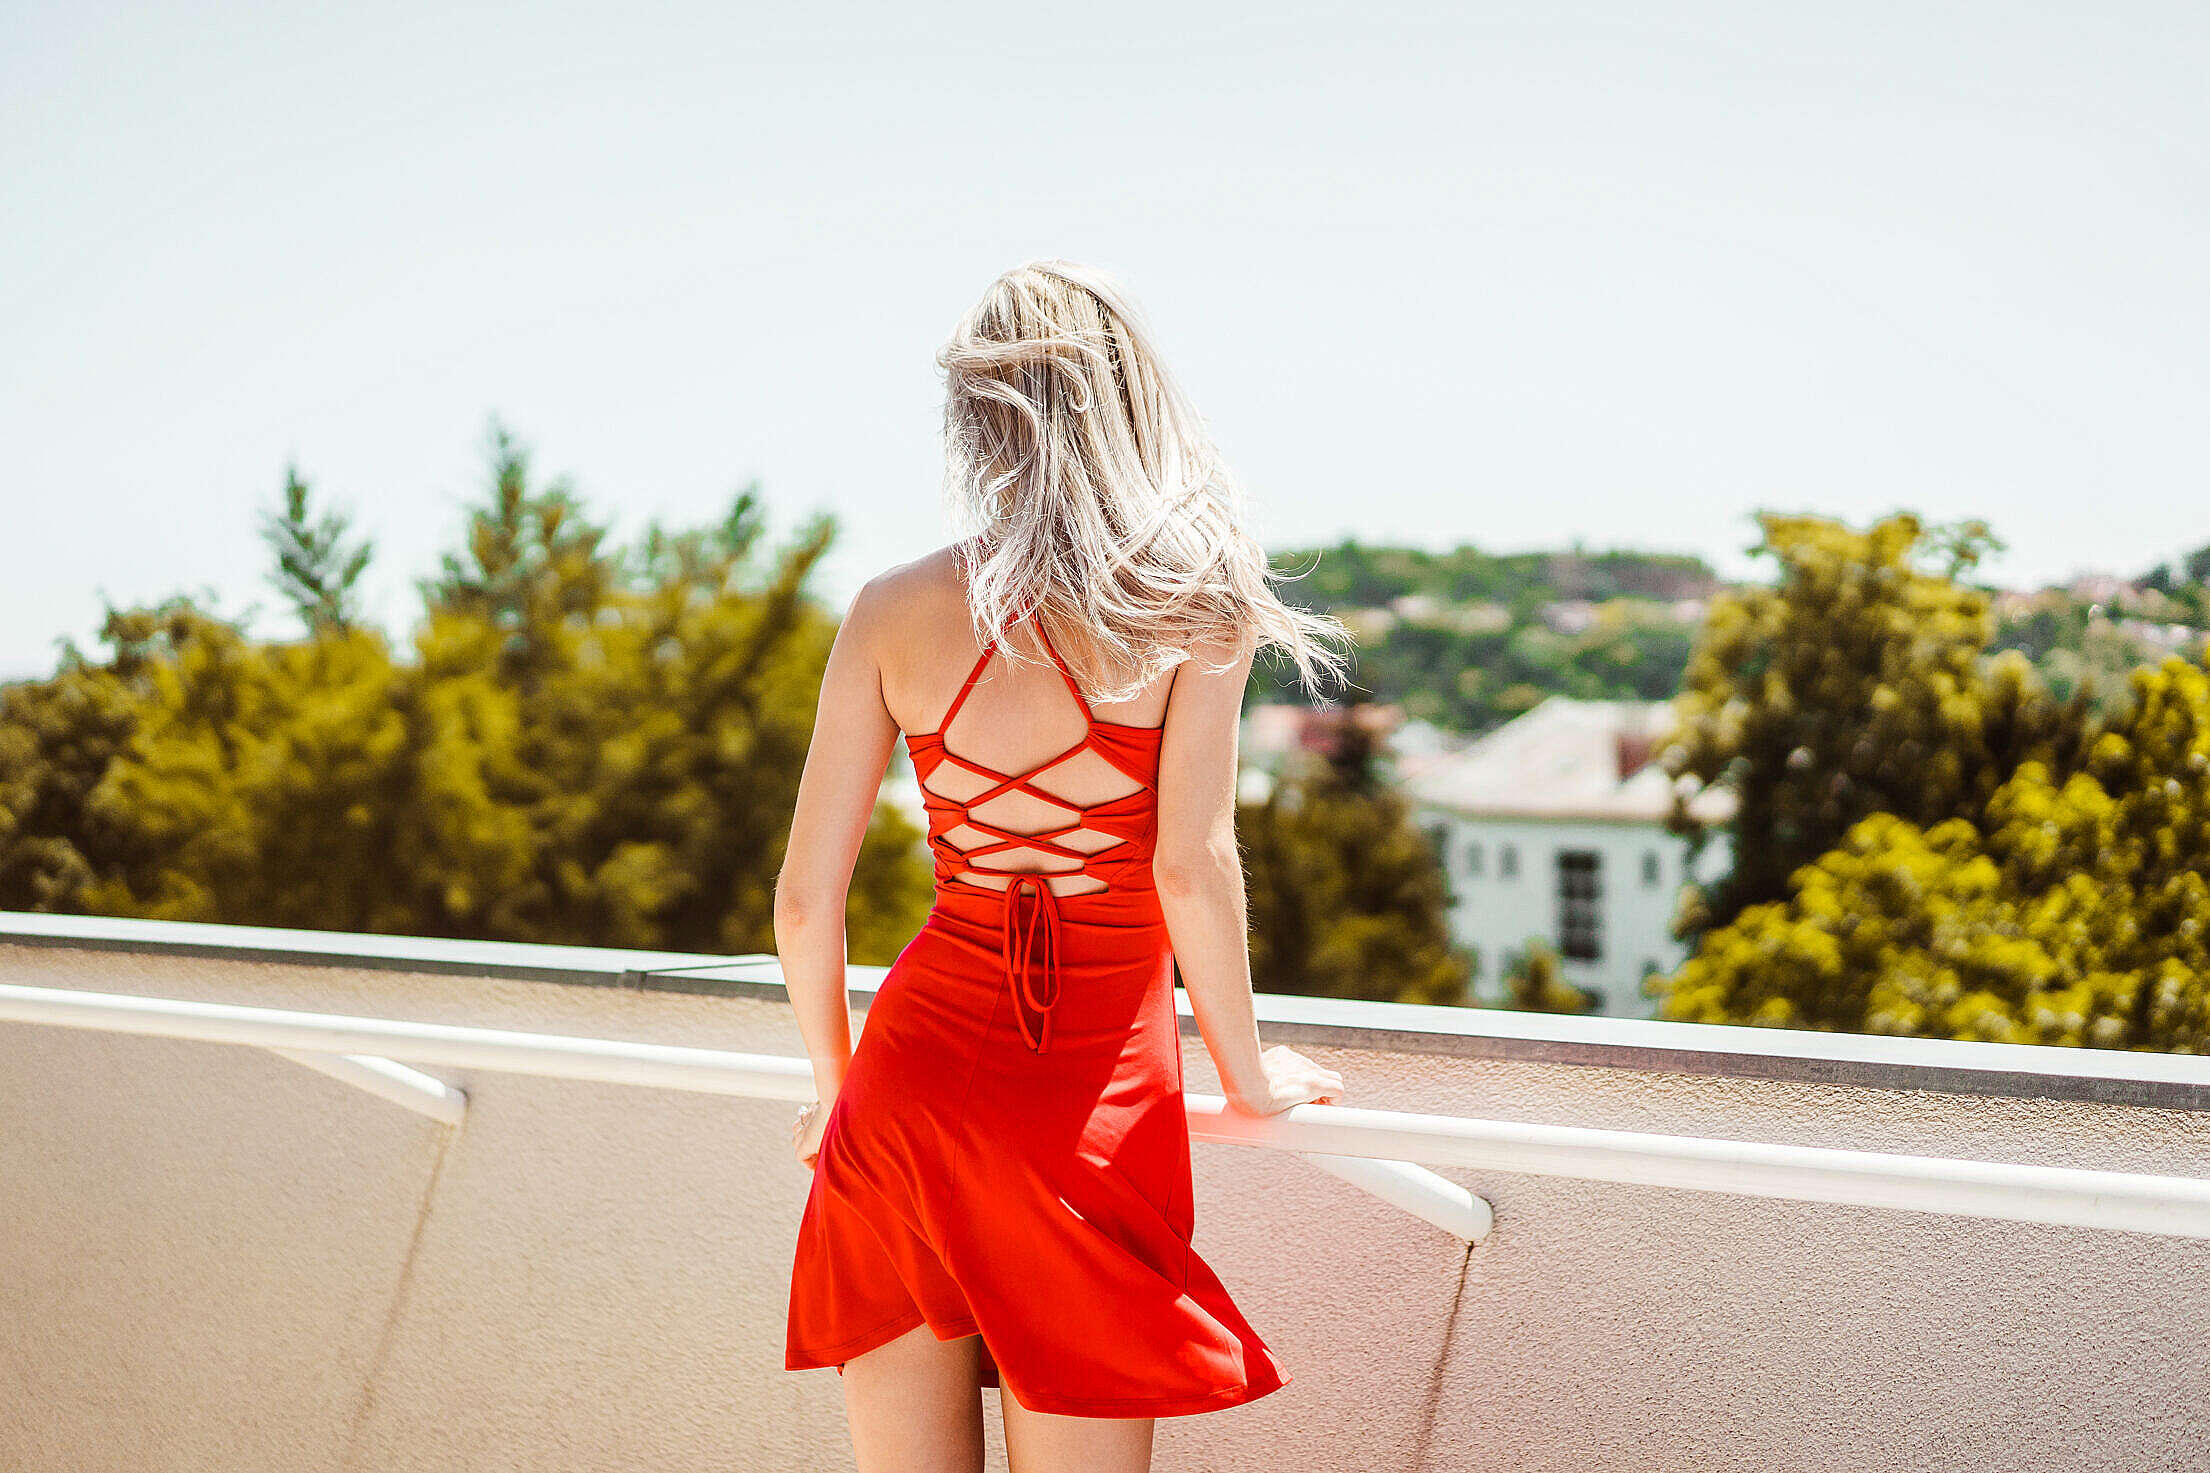 Young Blonde Woman Looking Around on Terrace Free Stock Photo